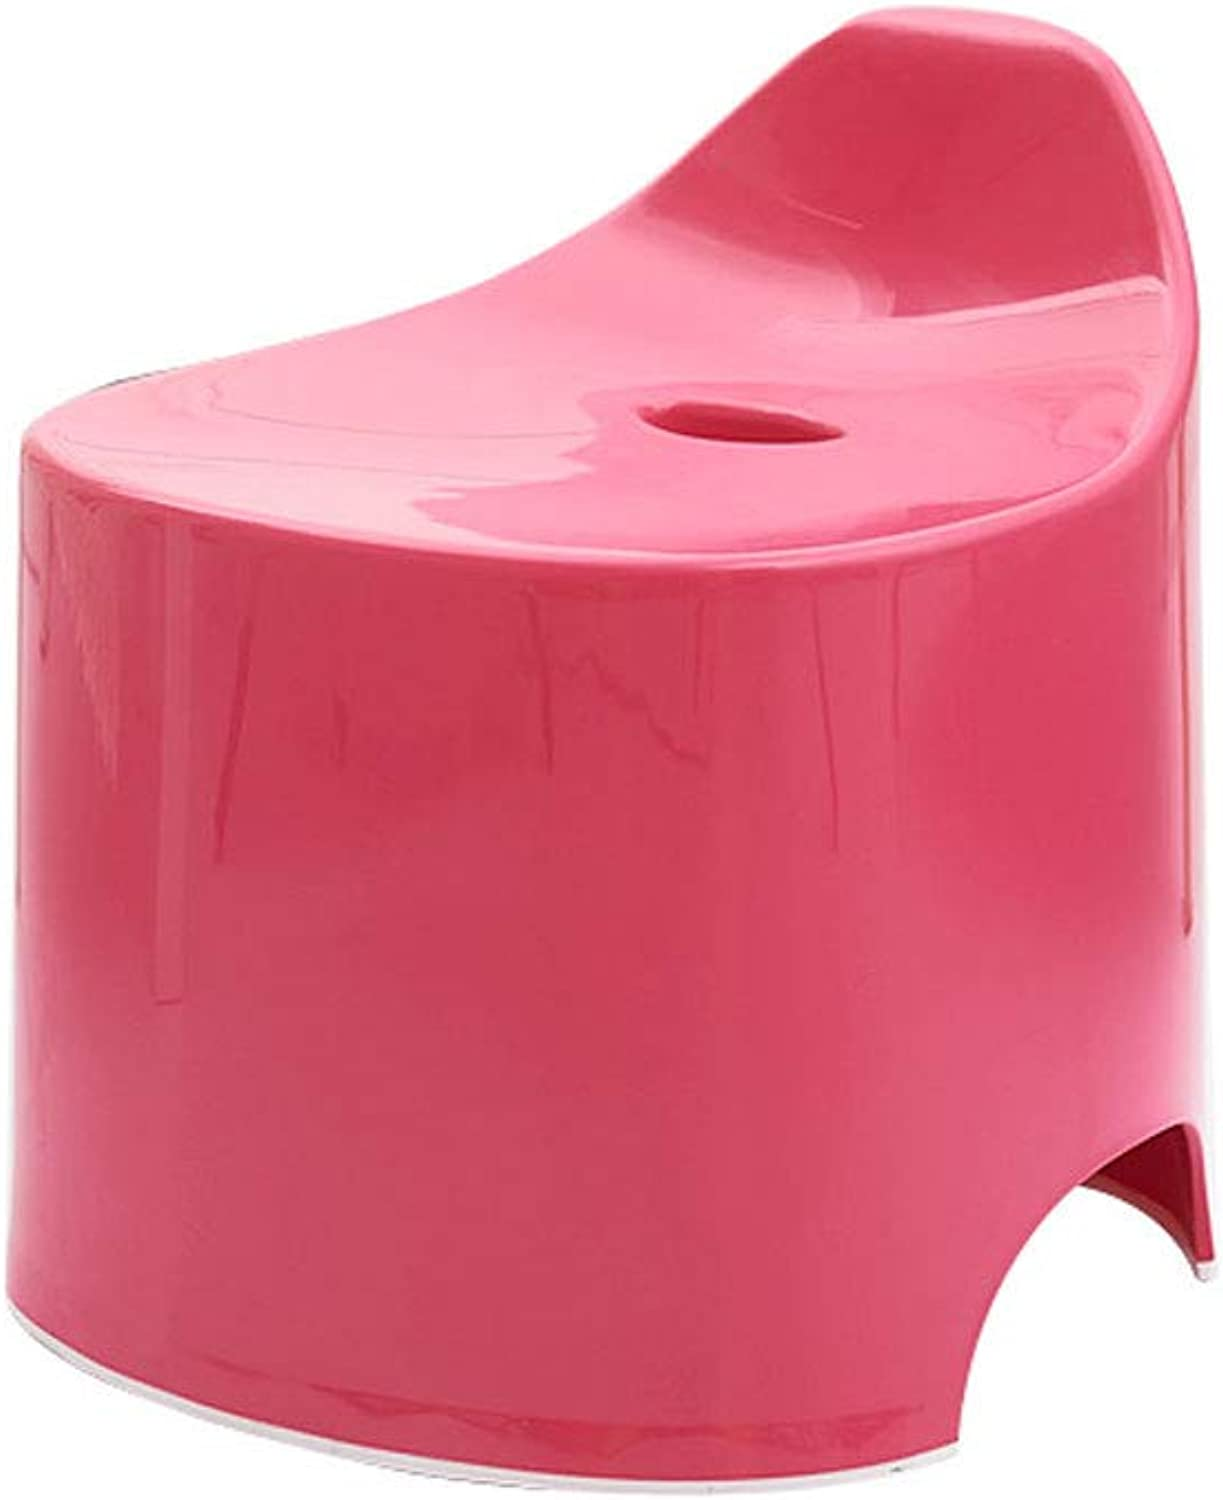 Candy color Bathroom Stool Plastic Thickened Stool Multi-Function Household Anti-Slip Stool (color   pink red)